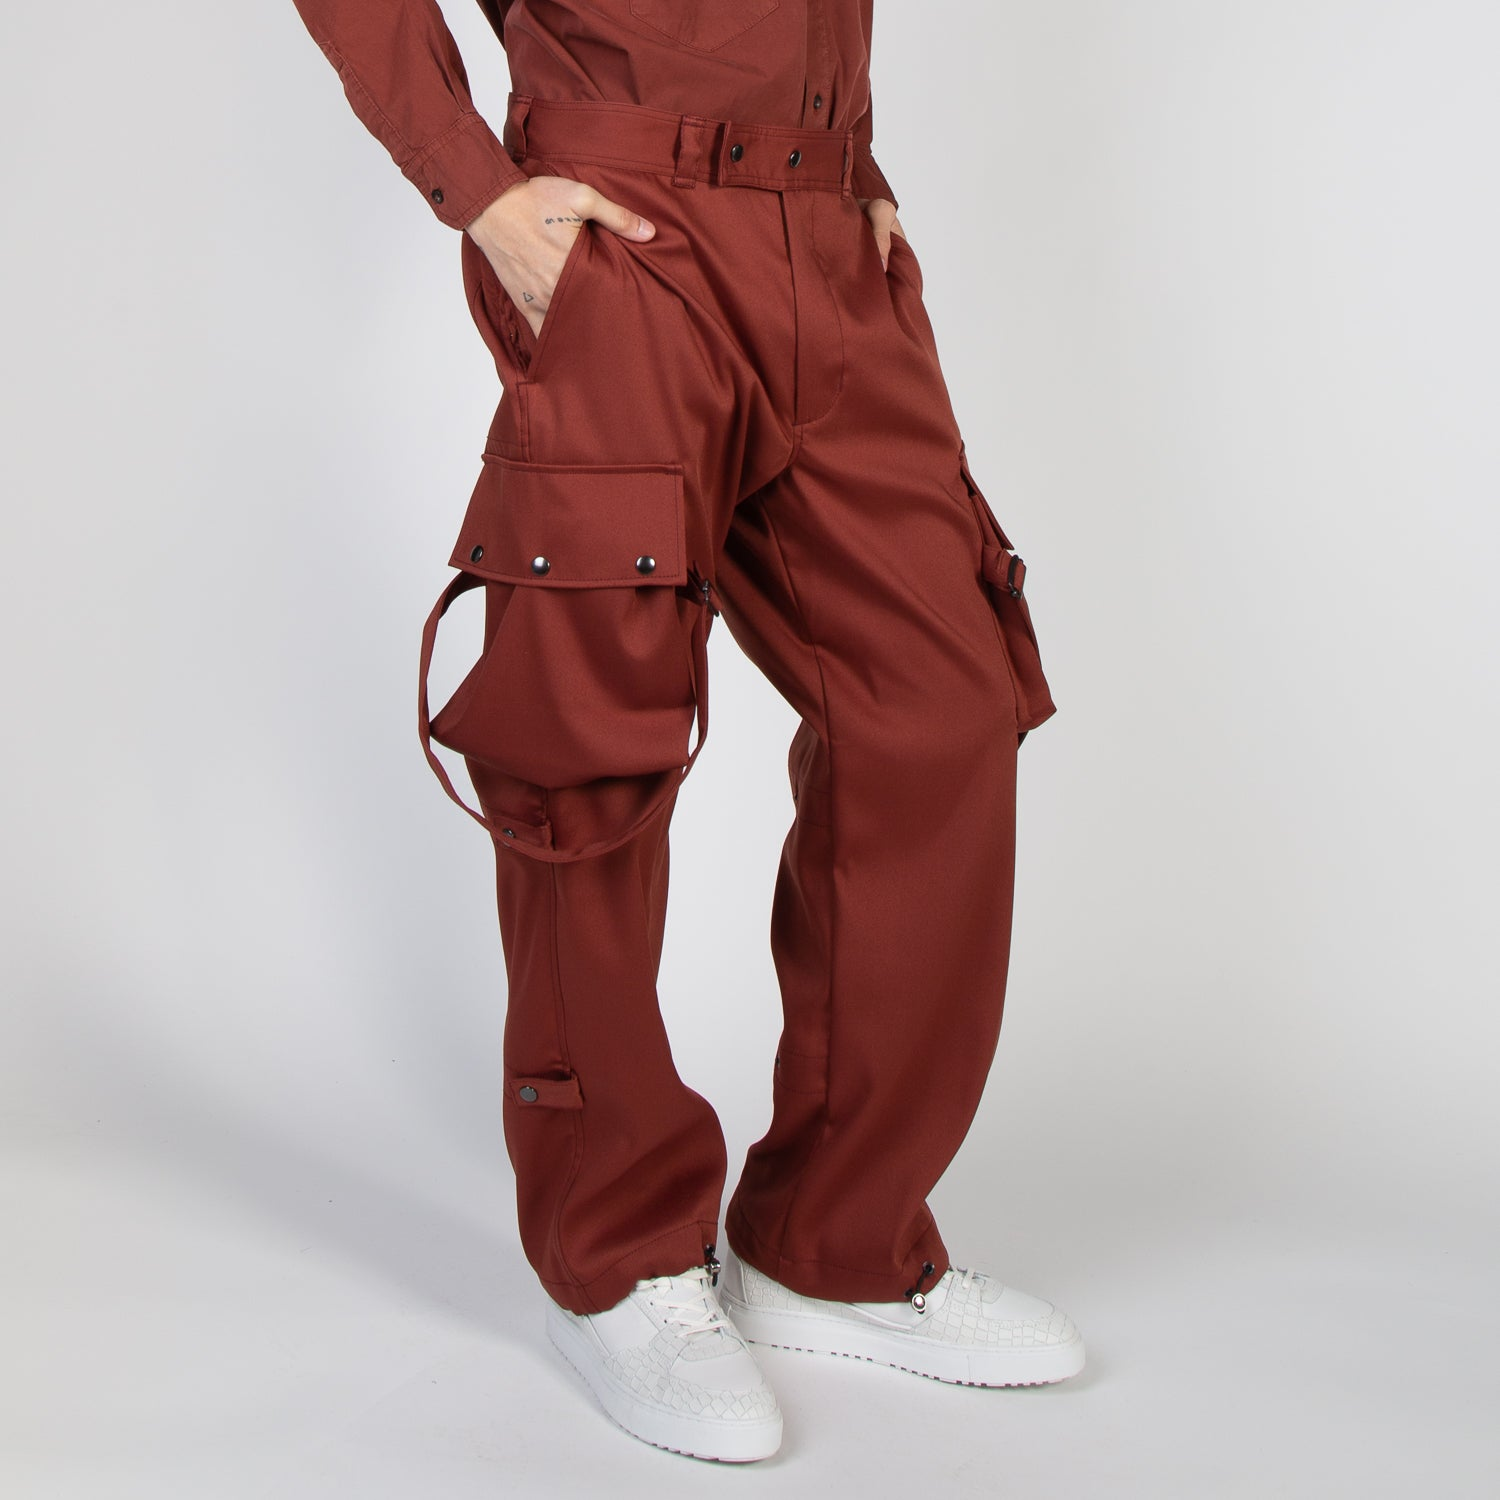 Cargo Pants in rust colour by Blue Marble at Secret Location